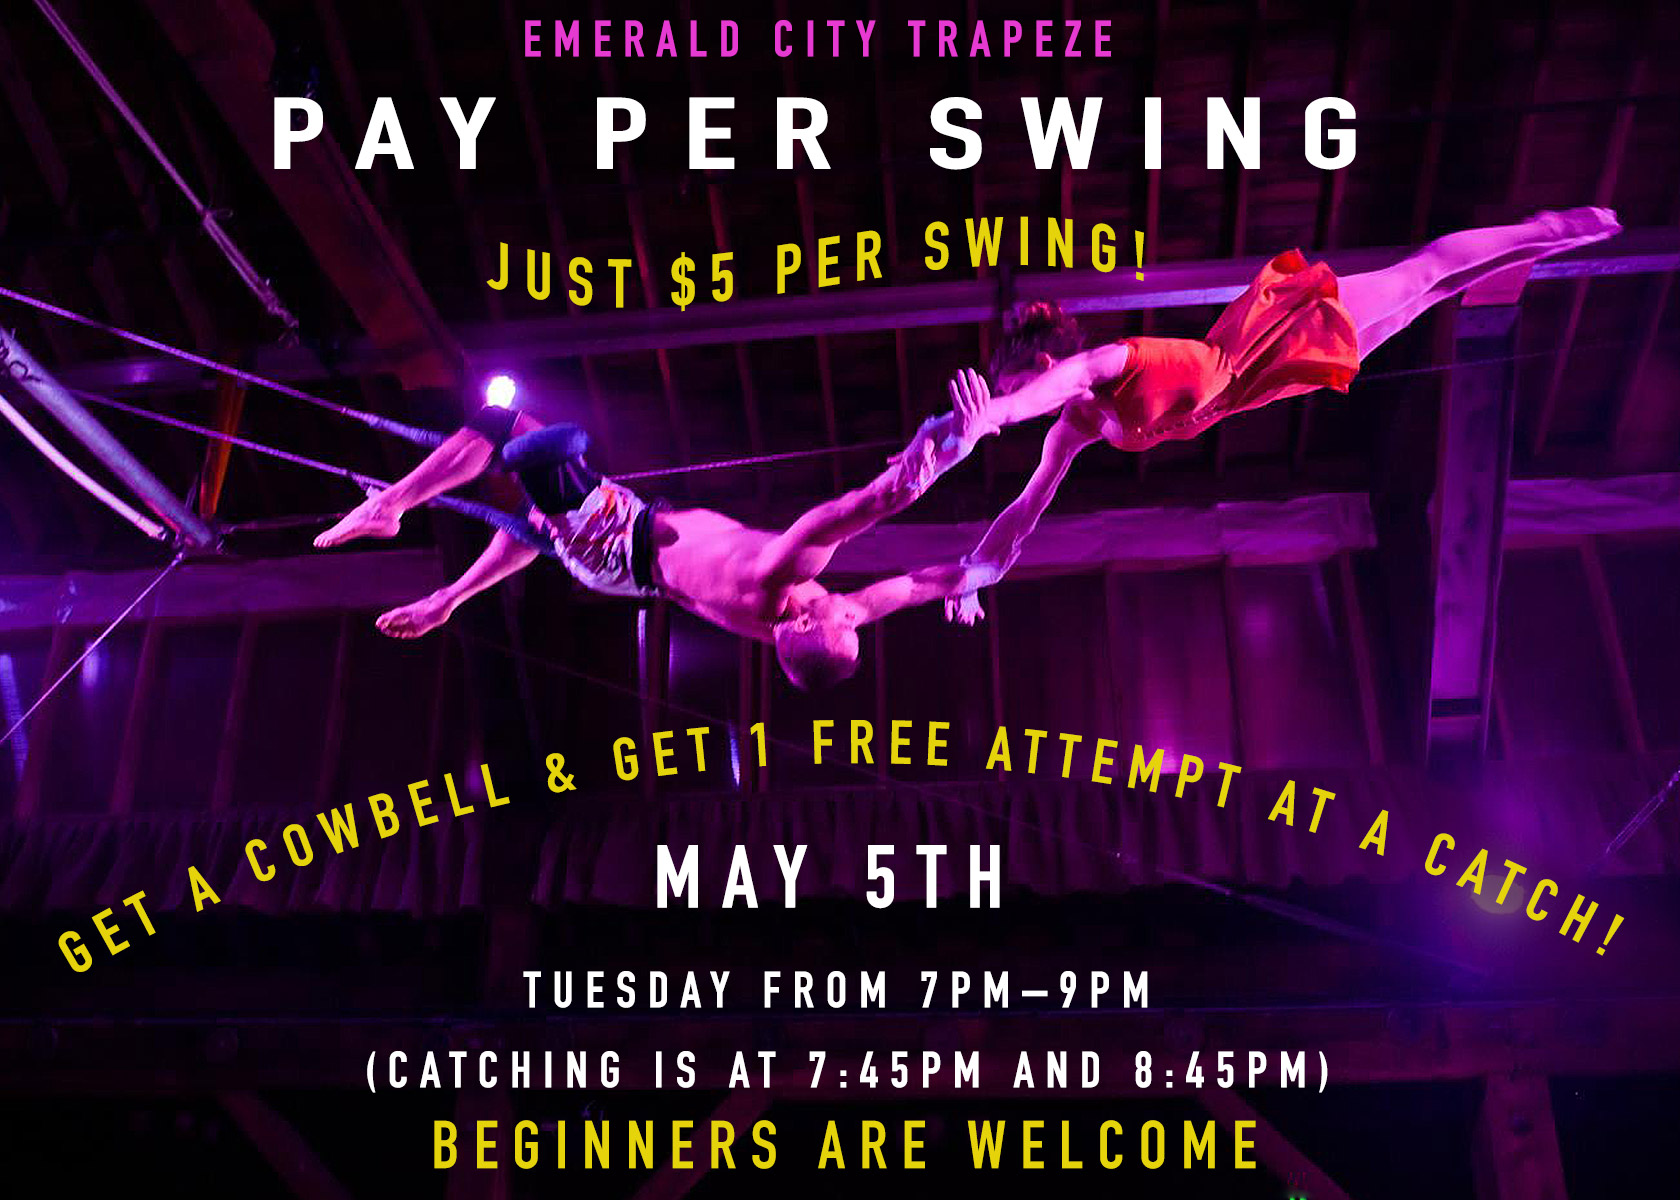 Emerald City Trapeze Pay Per Swing - Learn Flying Trapeze!